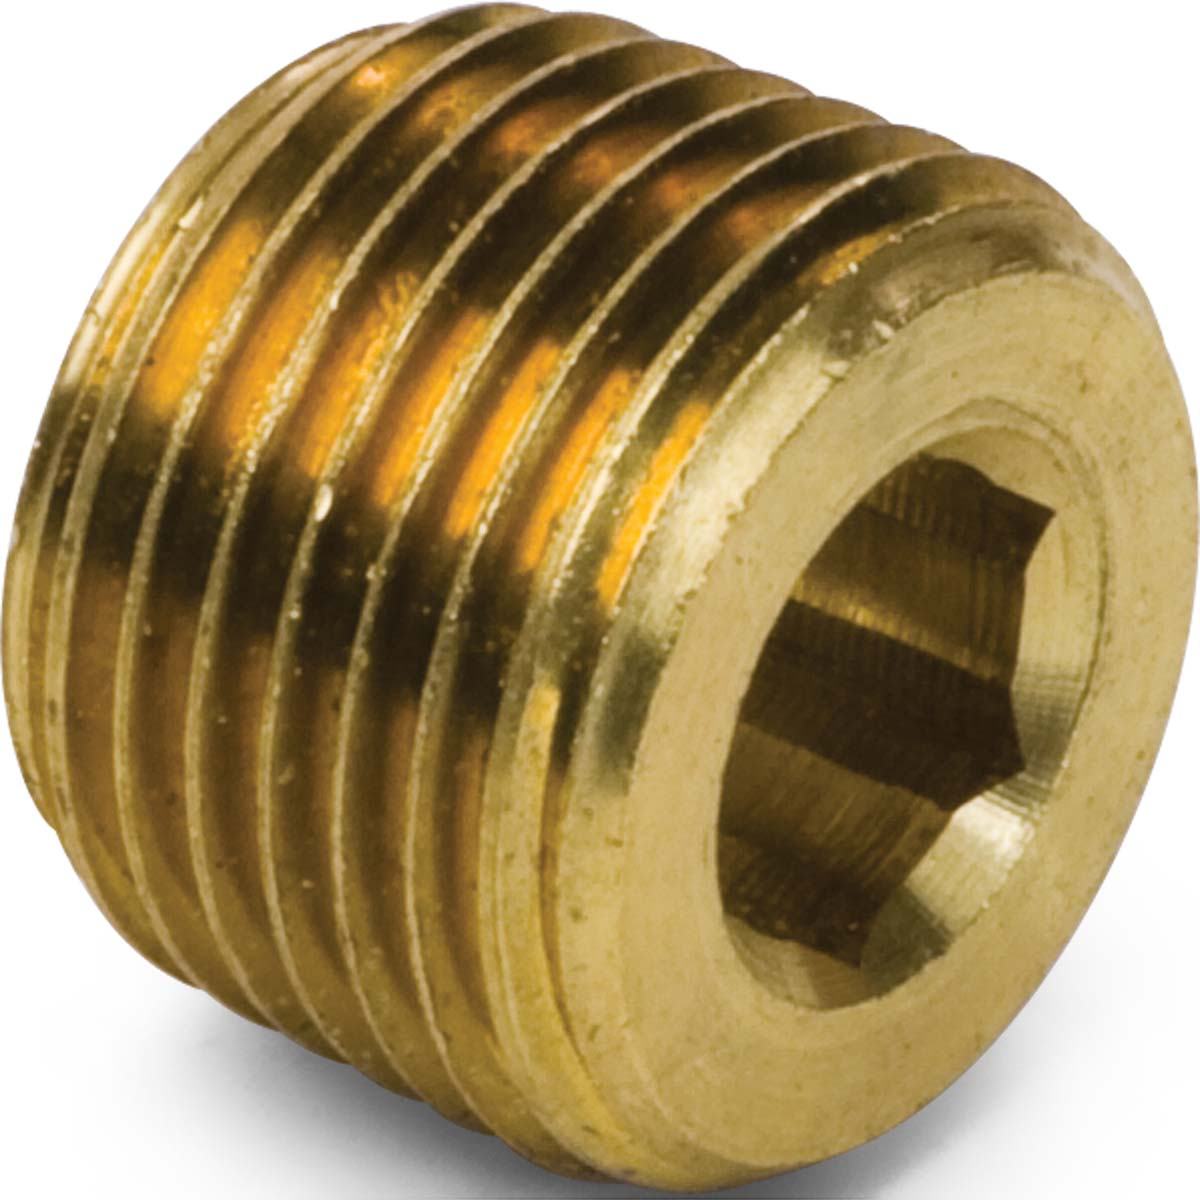 Brass pipe hex socket plug kimball midwest